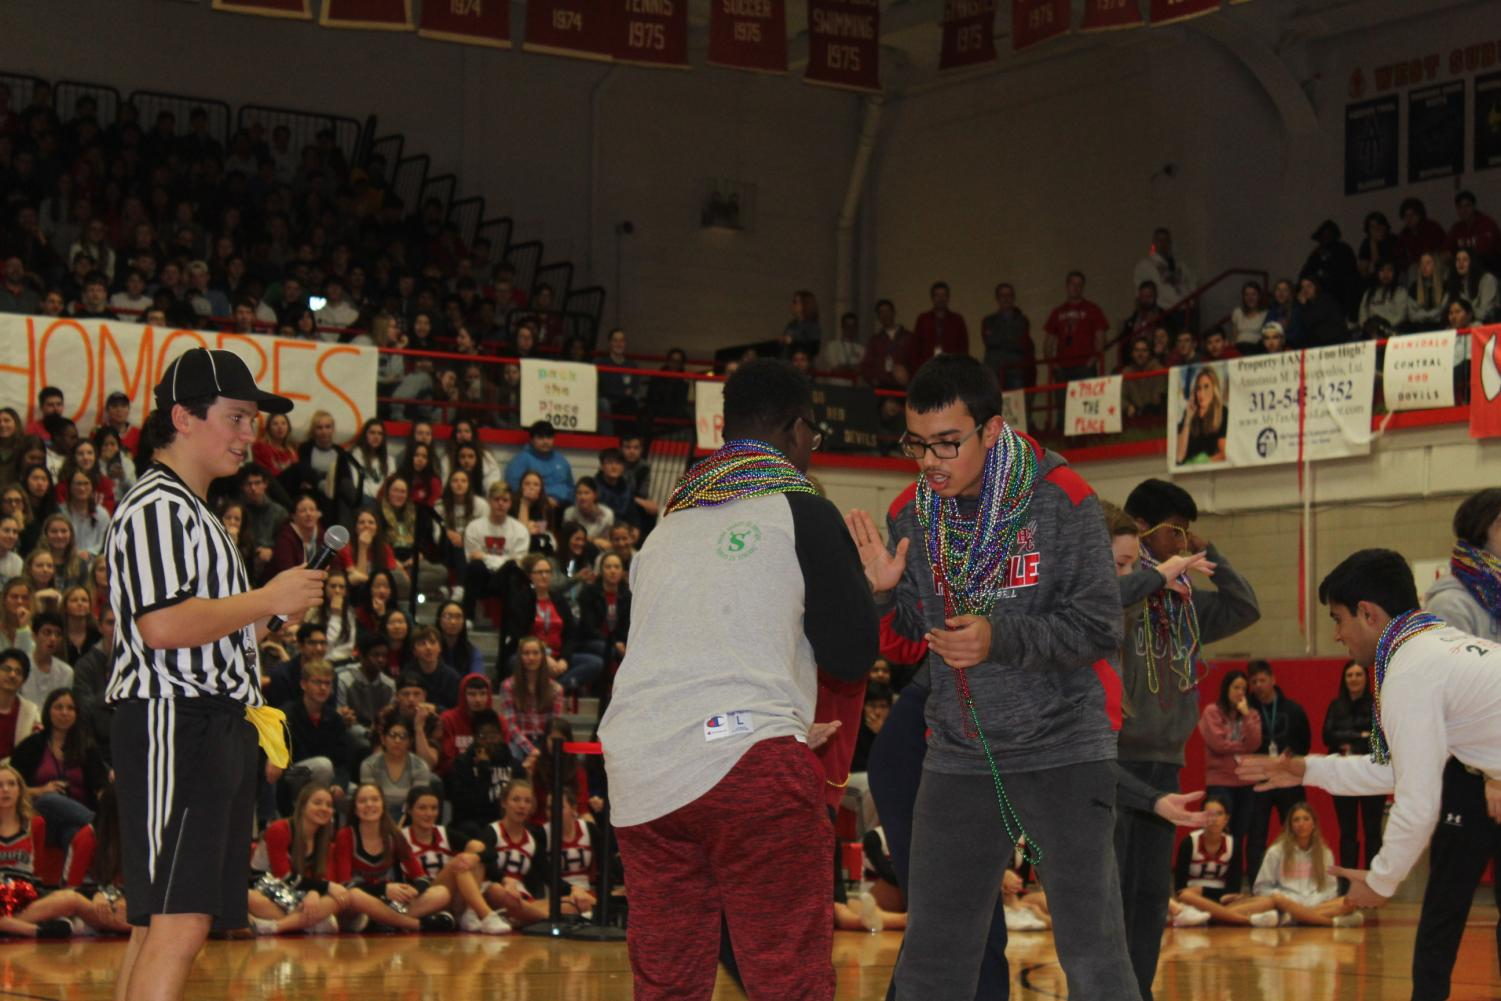 On+Friday+Jan.+9%2C+students+with+the+most+beads+at+the+end+of+spirit+week+participated+in+a+Rock+Paper+Scissor%27s+Championship+at+the+pep+rally.+The+crowd+cheered+as+sophomore+Jeremiah+Adams+won+the+final+championship.+